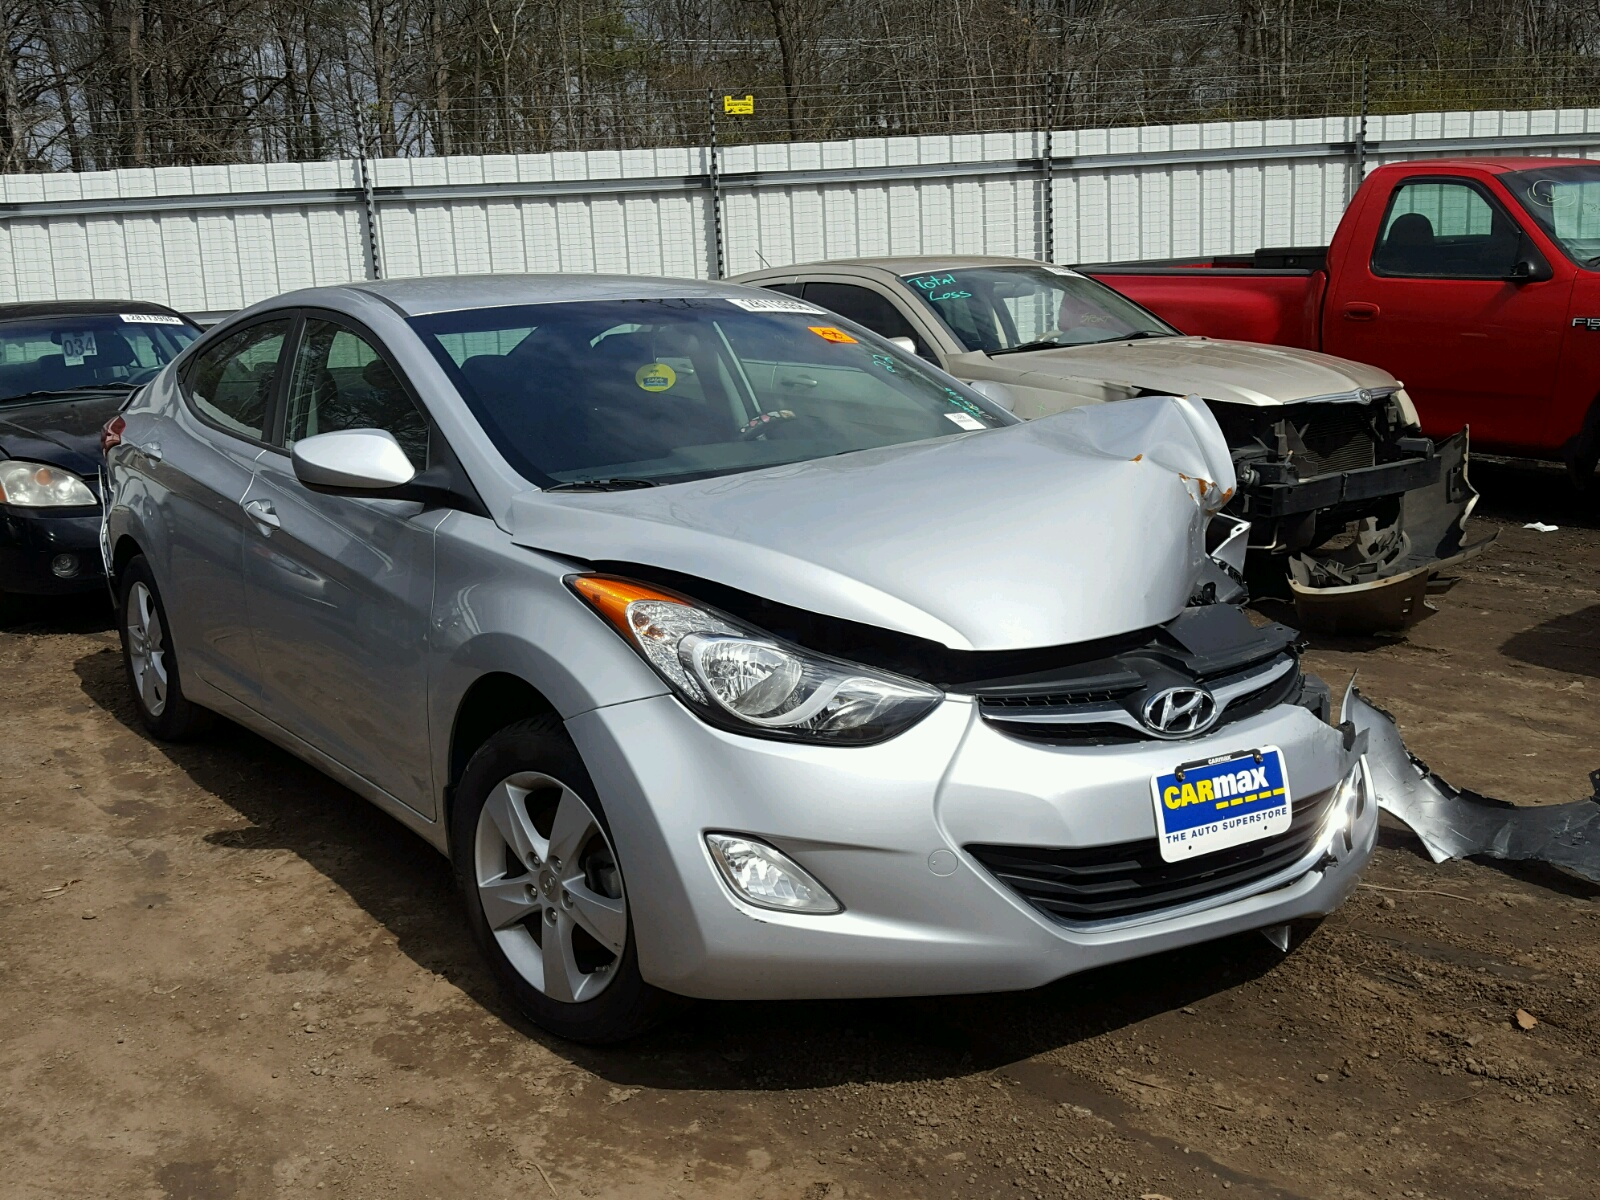 hyundai title en in sale on auctions of carfinder sc auto certificate lot copart accent eeda gls black greer online